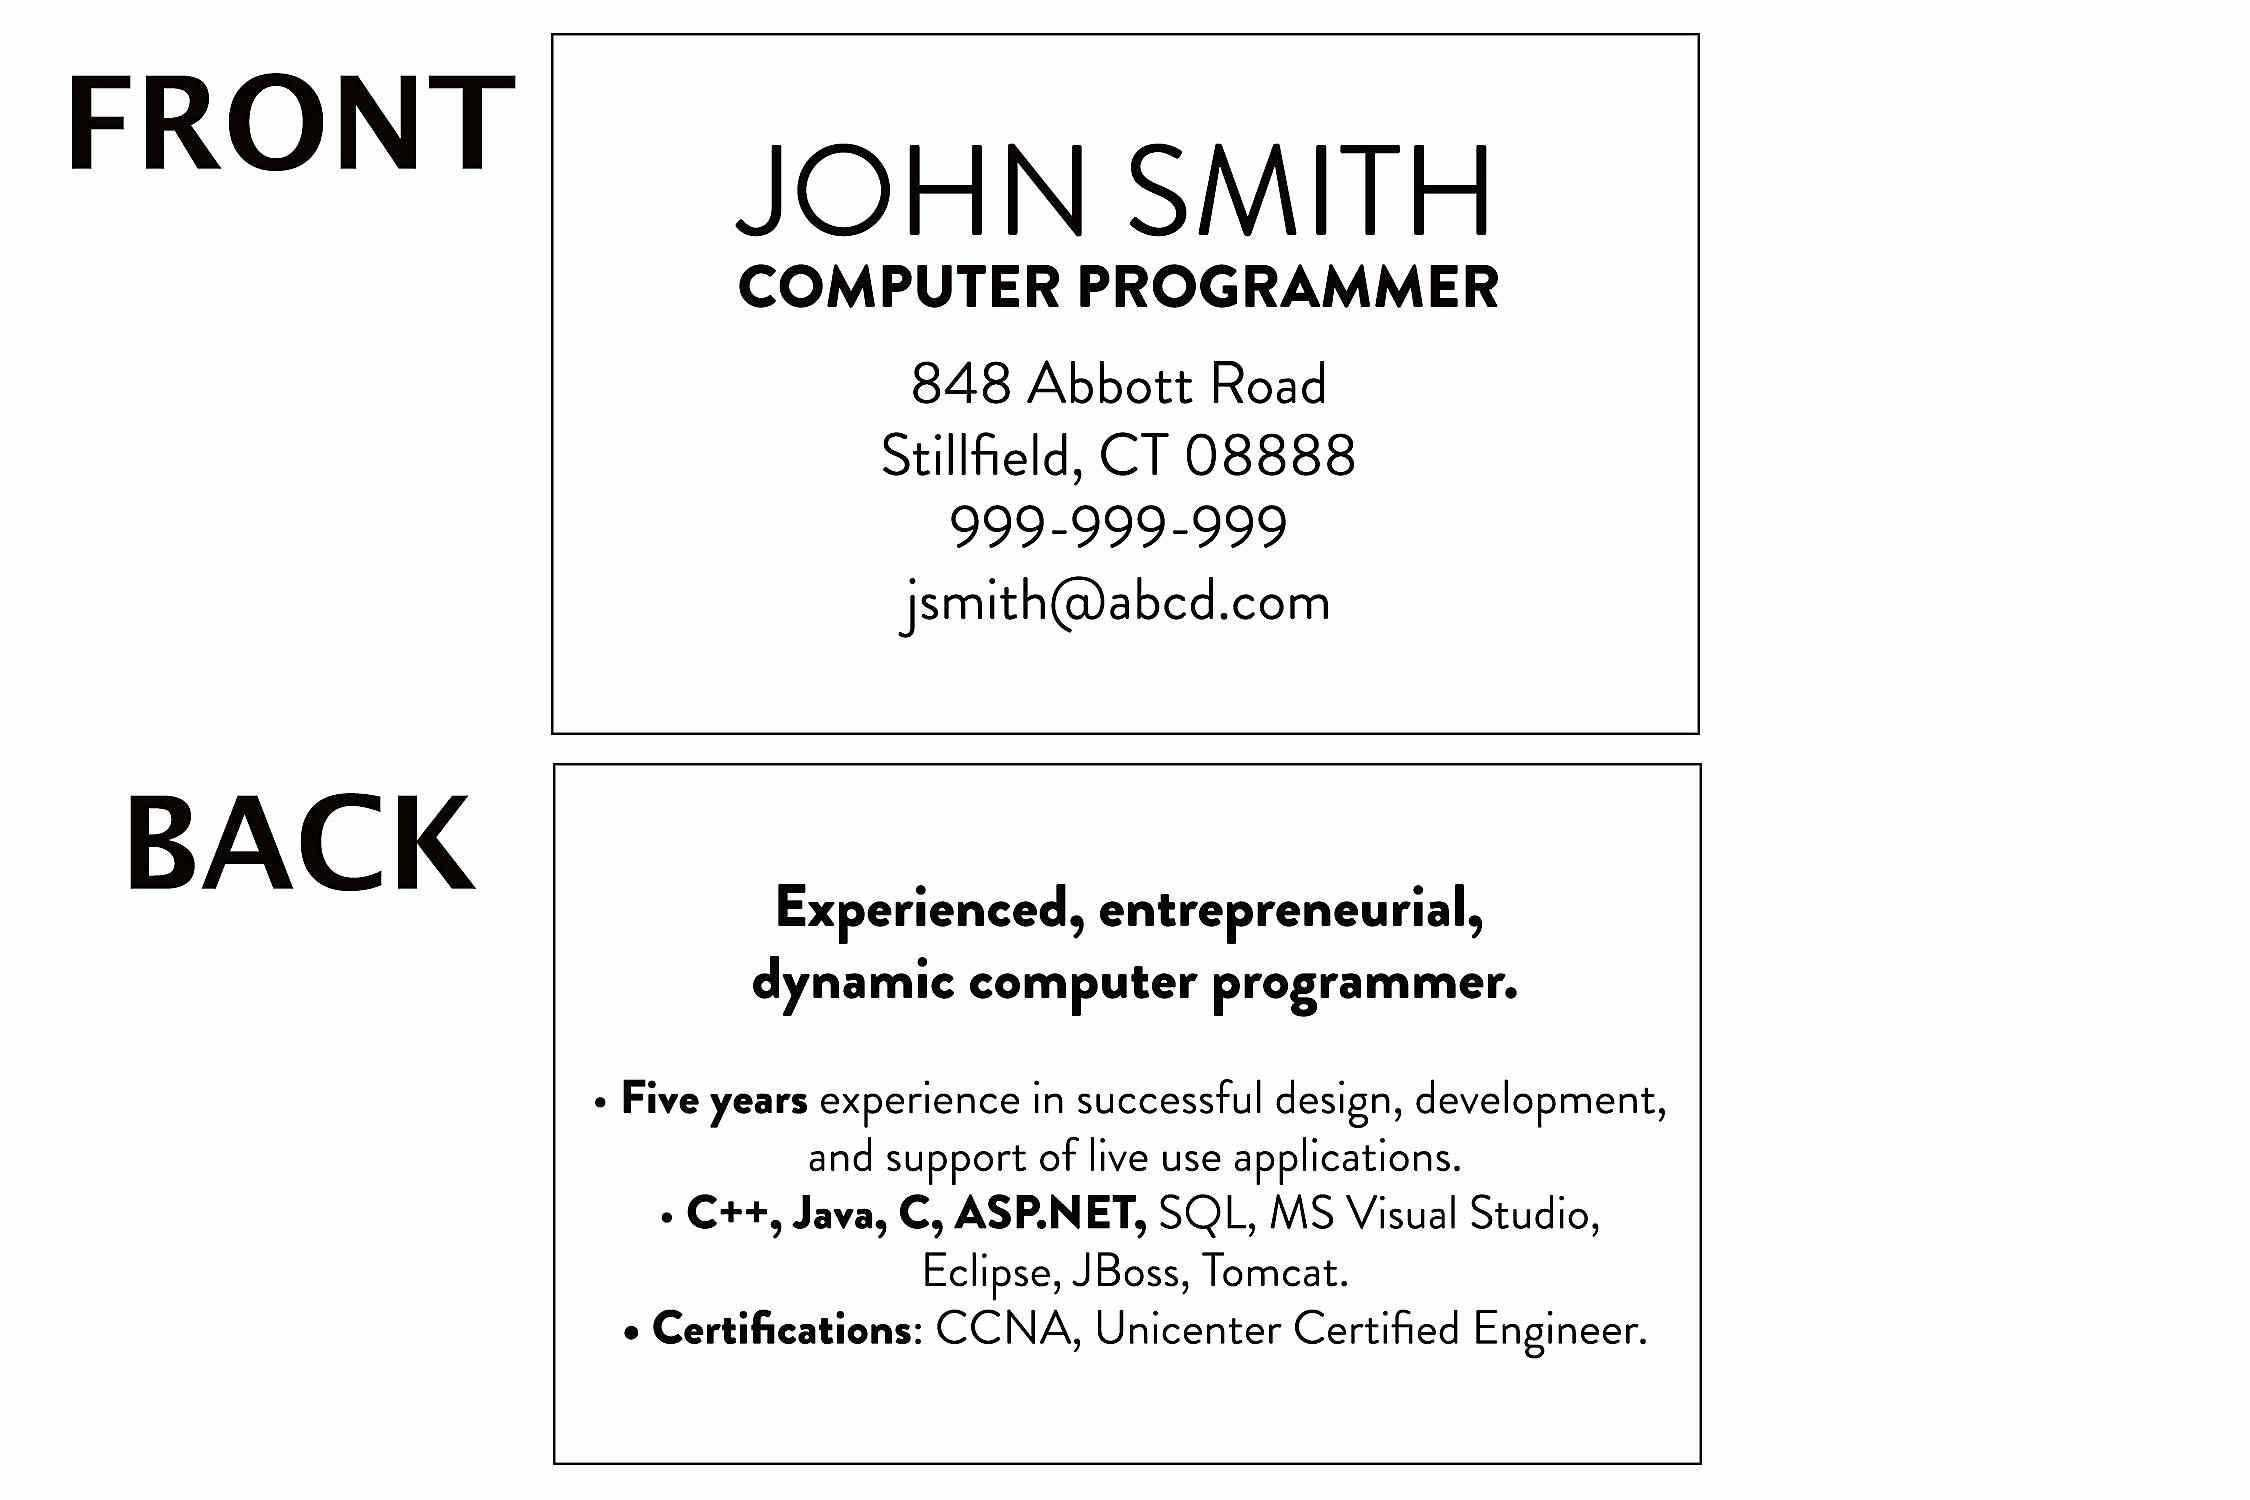 003 Student Business Card Template College Unique Cards Pertaining To Graduate Student Business Cards Template